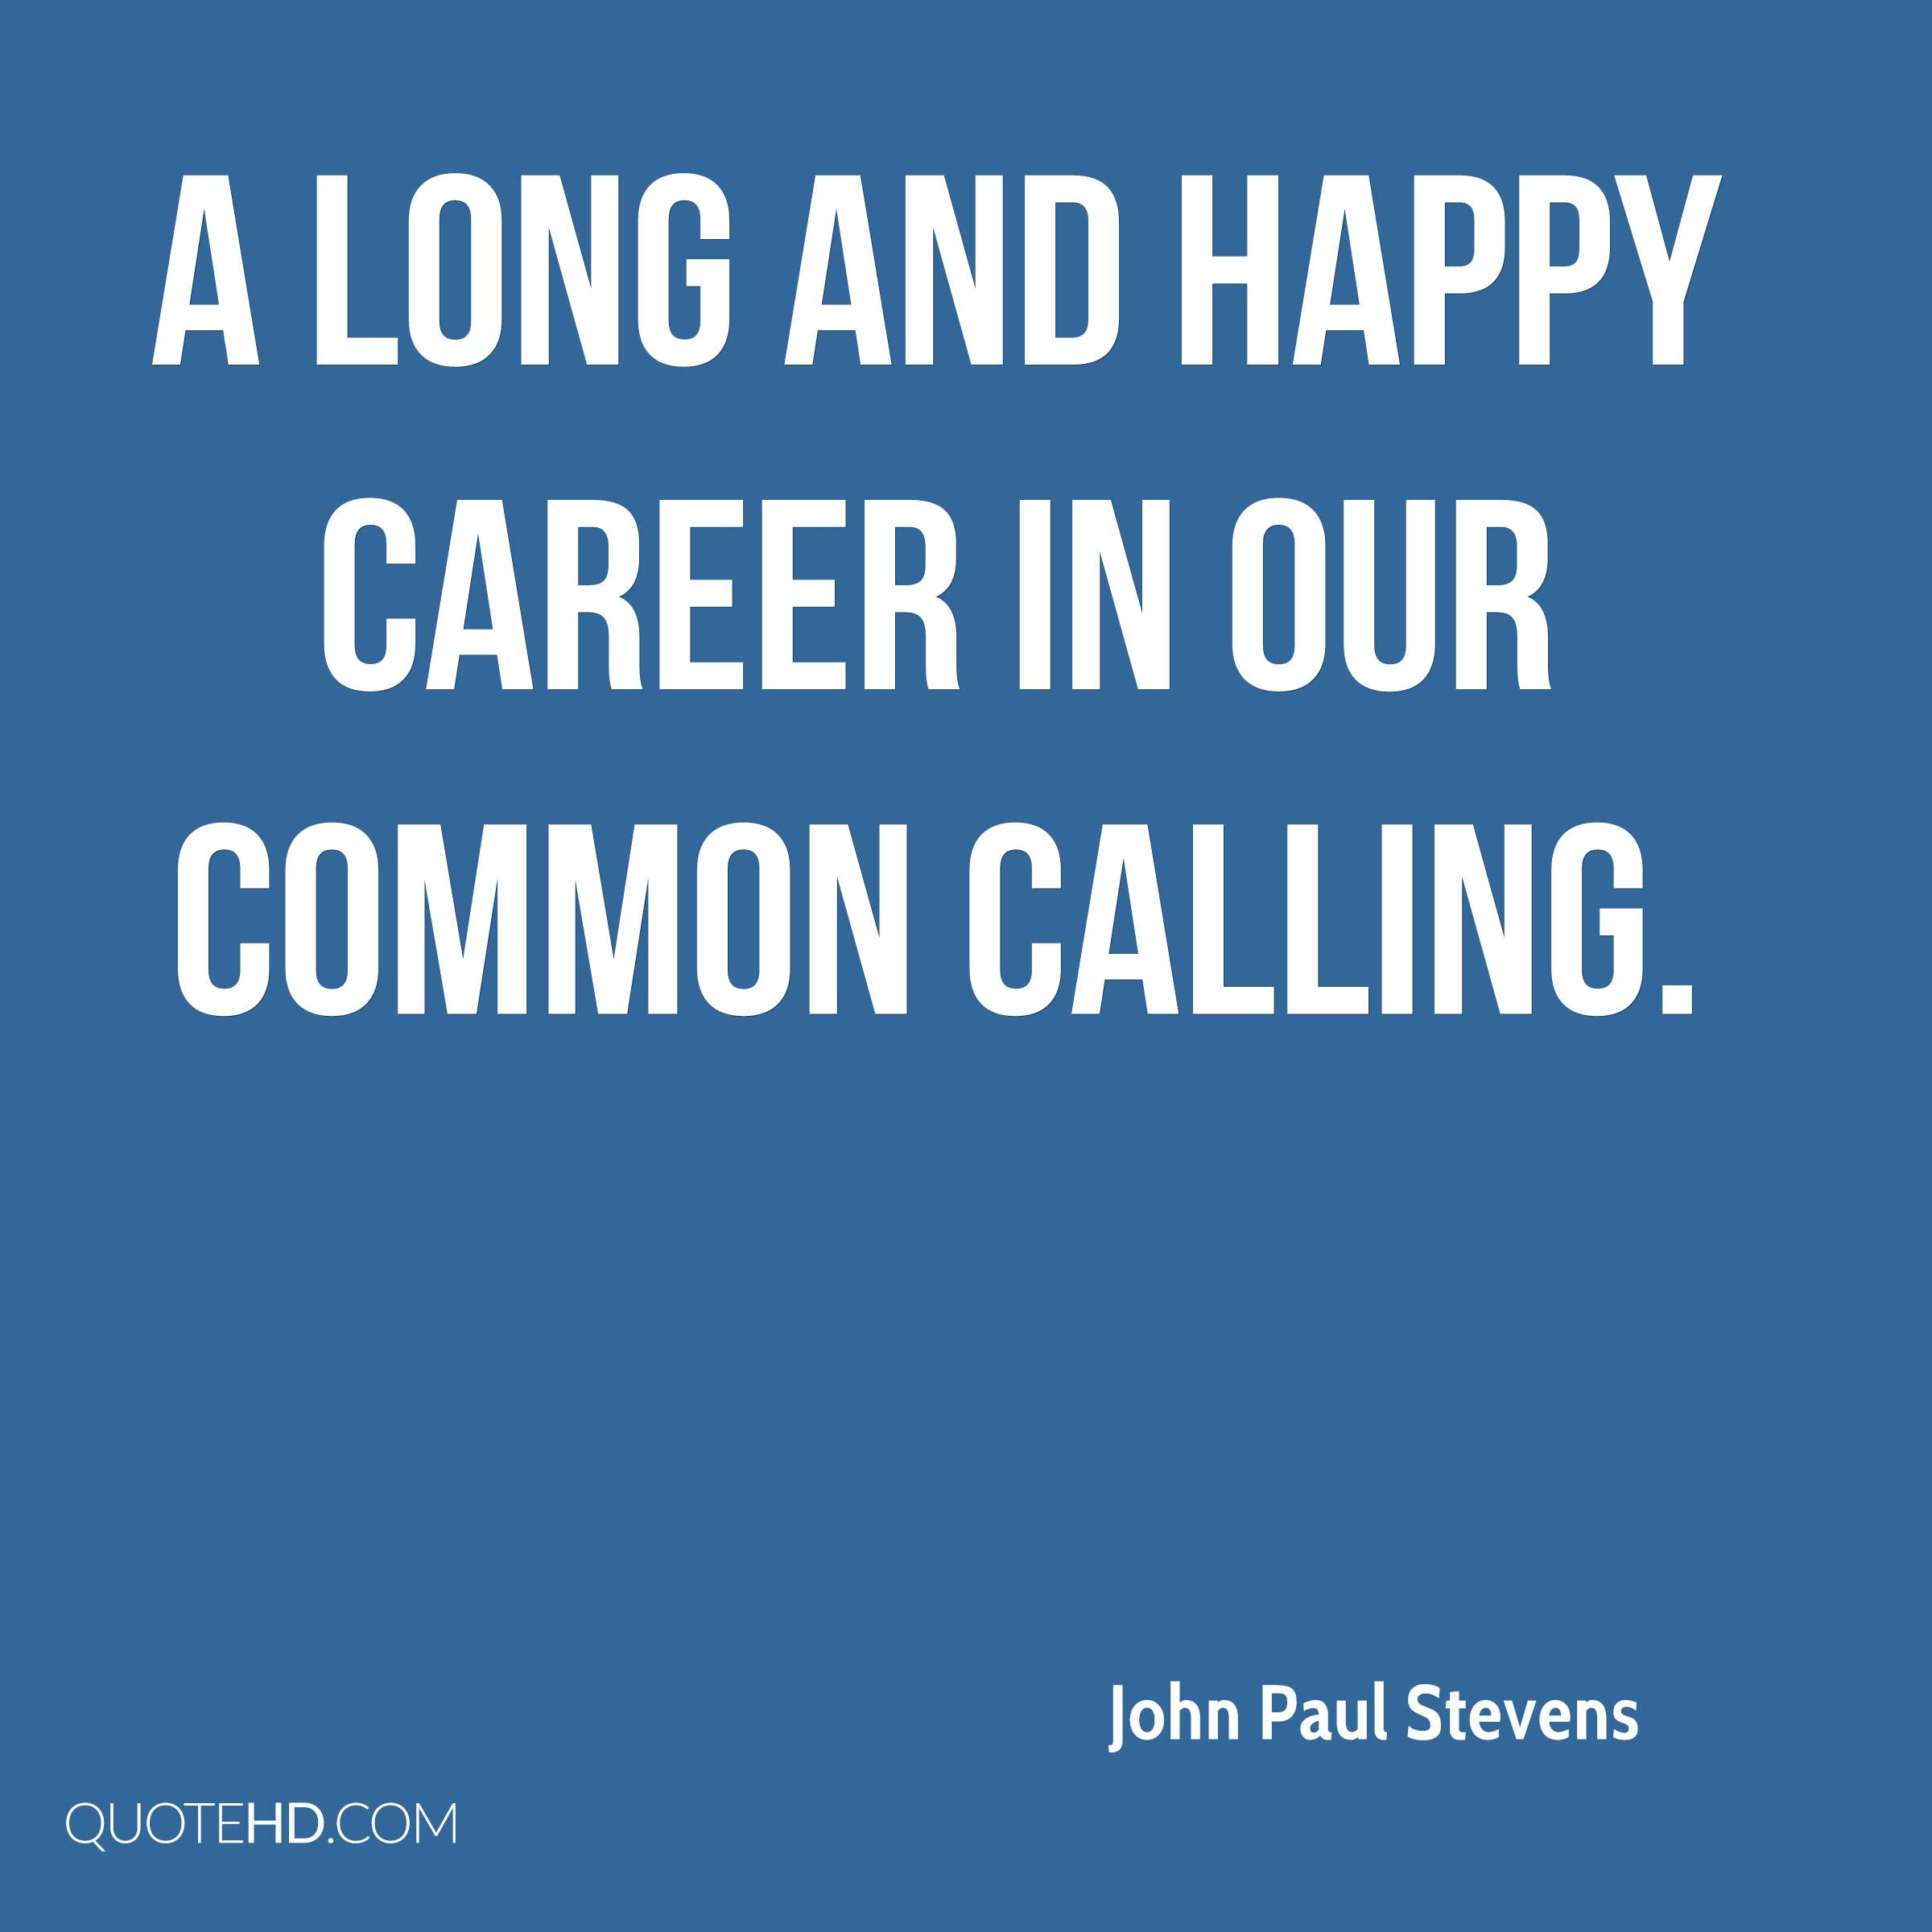 a long and happy career in our common calling.